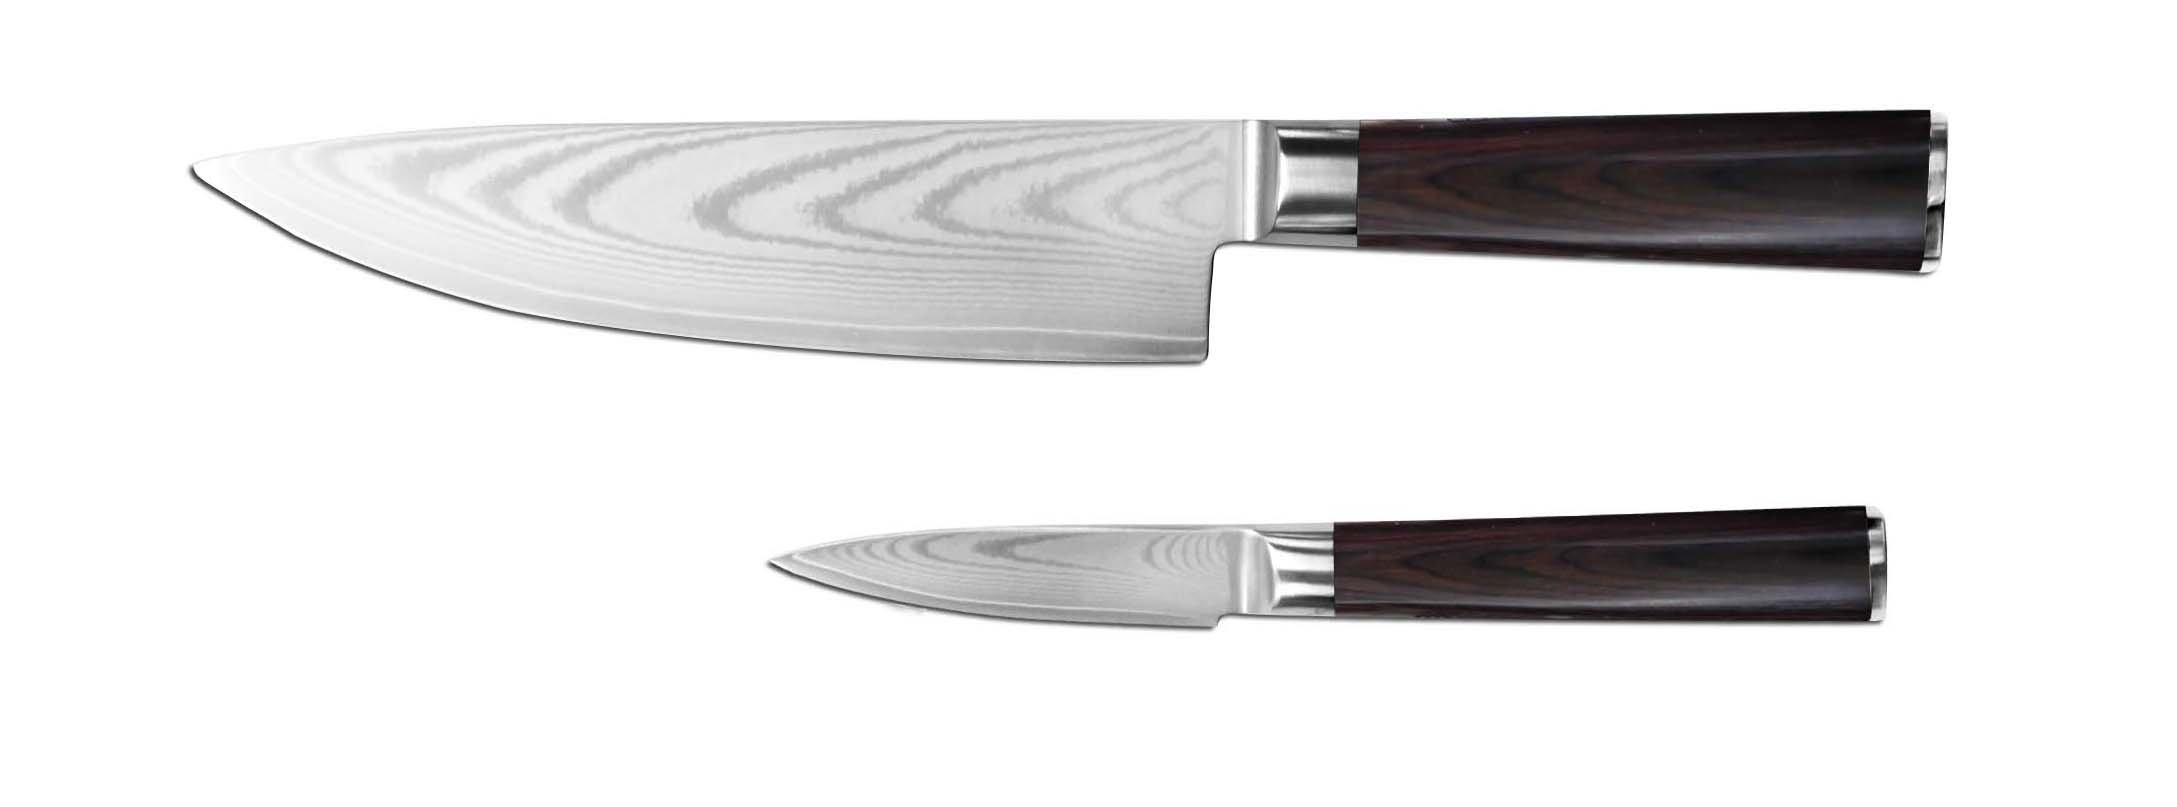 Export Stock 2pcs Good Quality Damascus Kitchen Knife